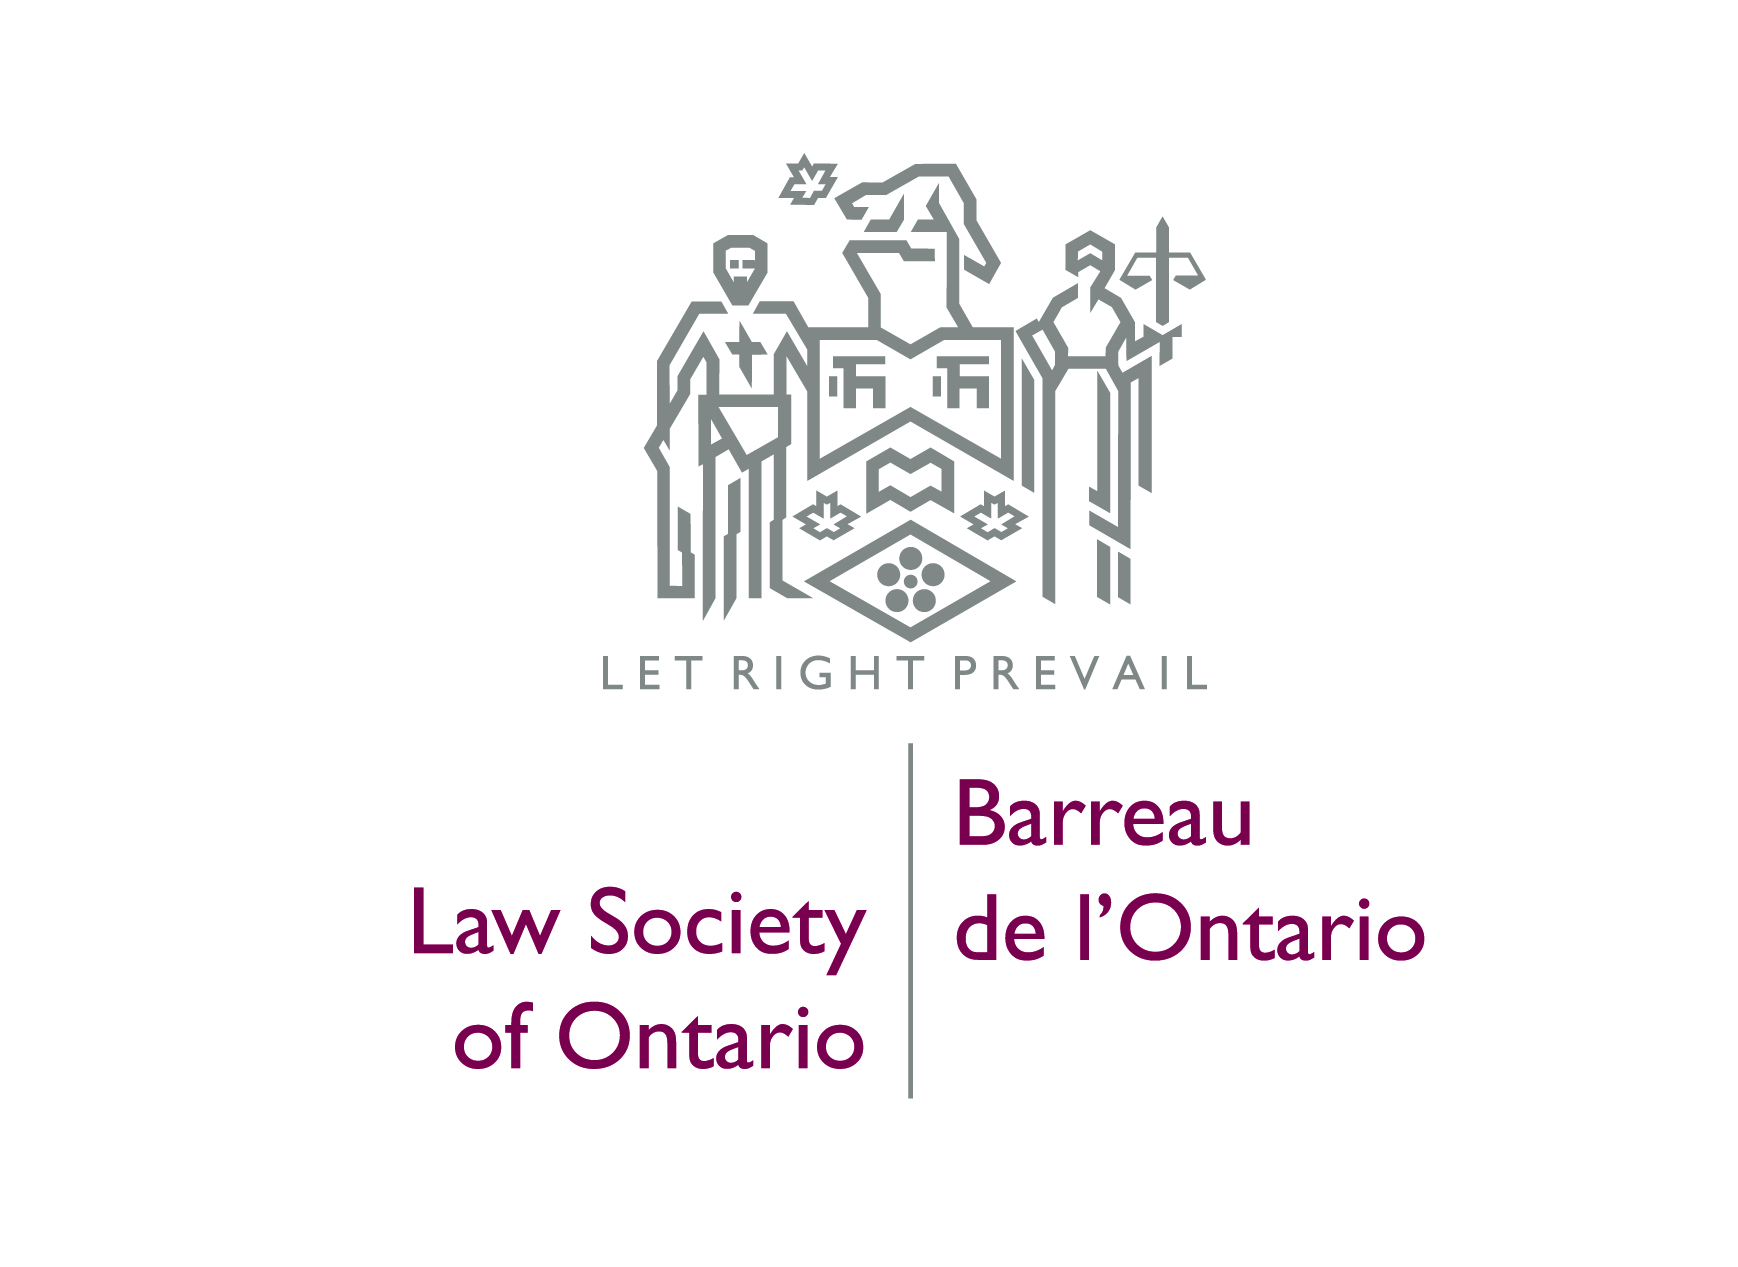 Logo Image for Barreau de l'Ontario